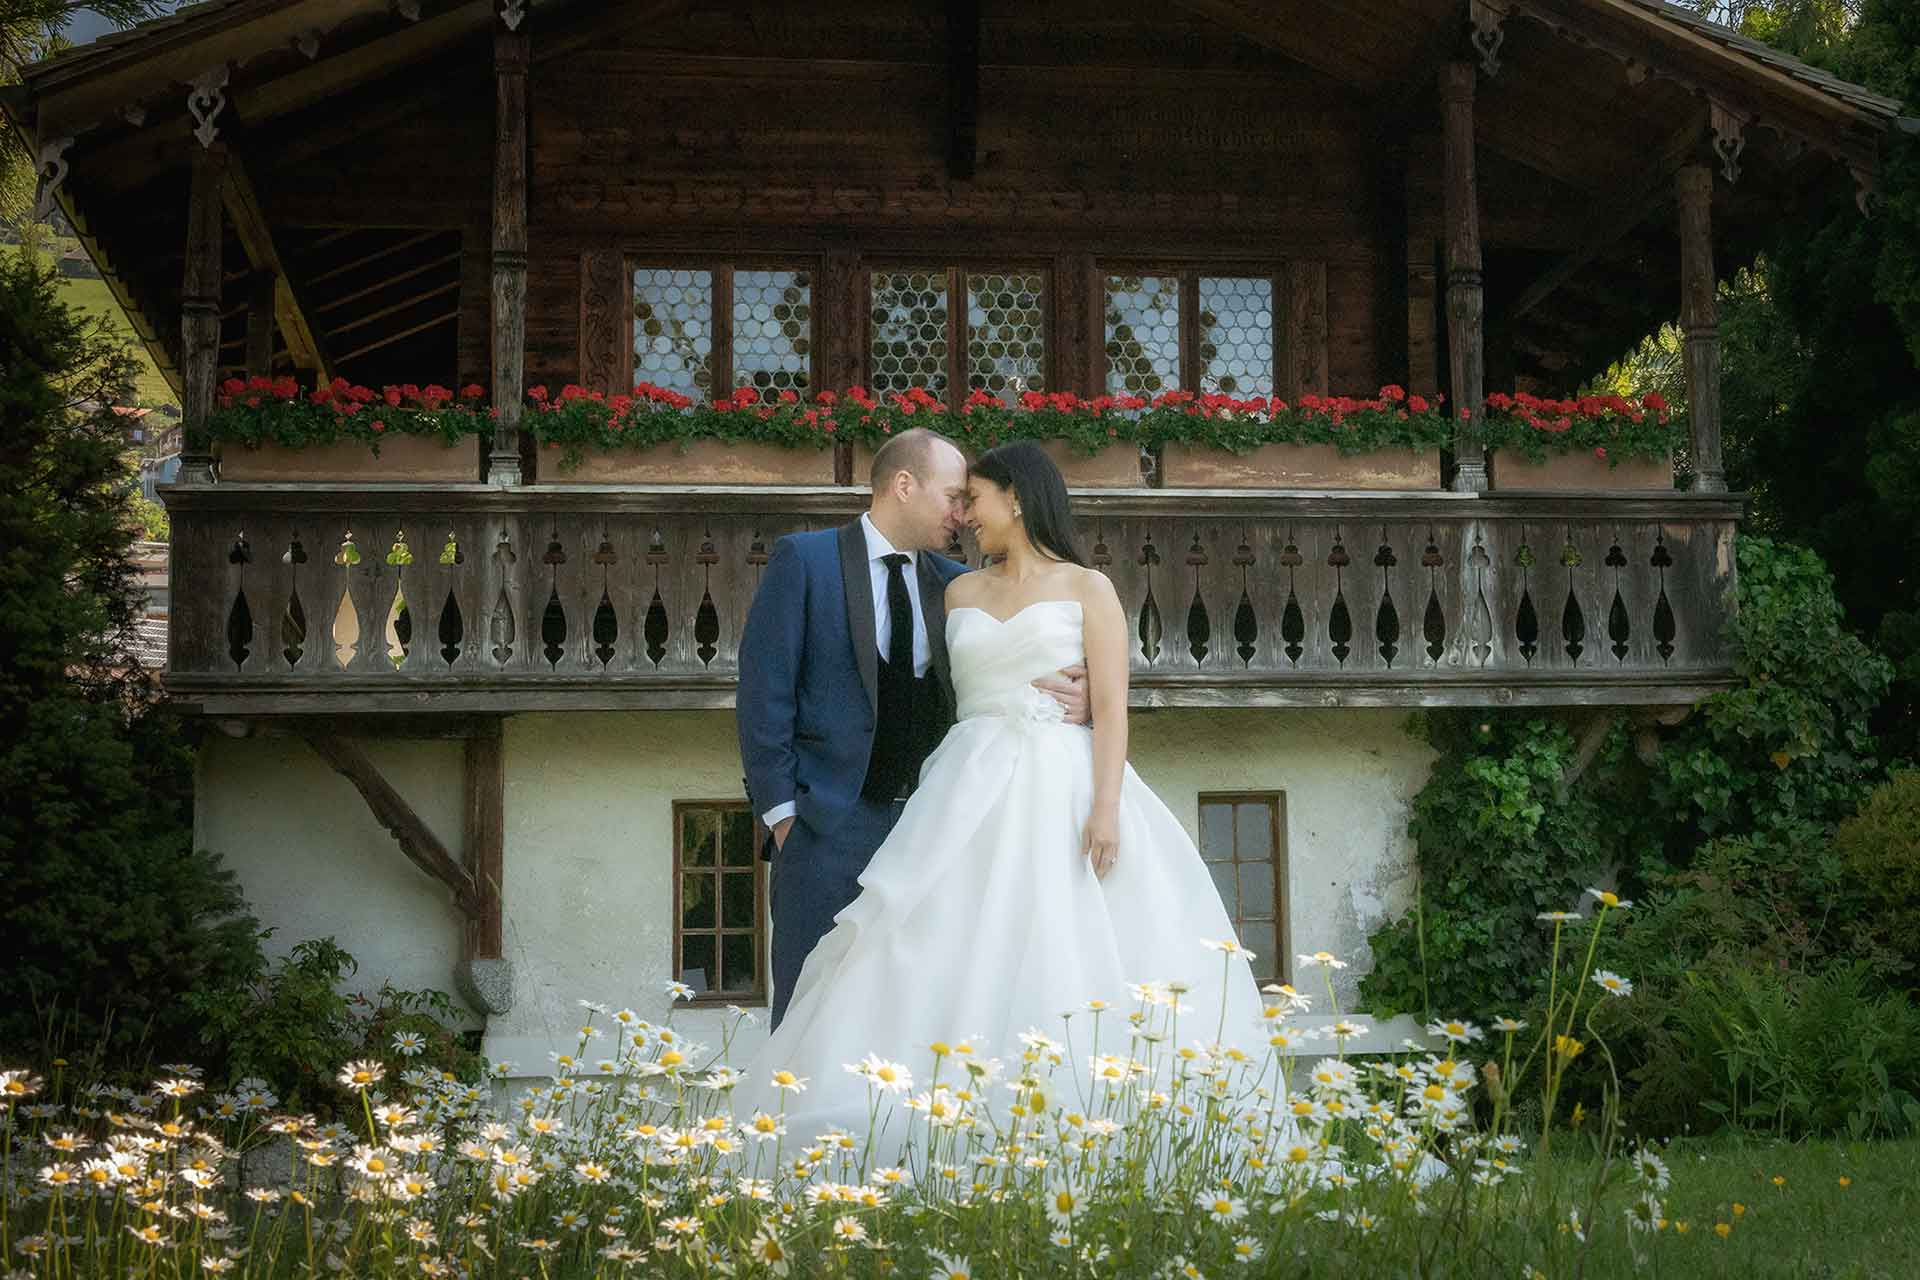 Photographer Bridal photo shoot in Oberhofen castle